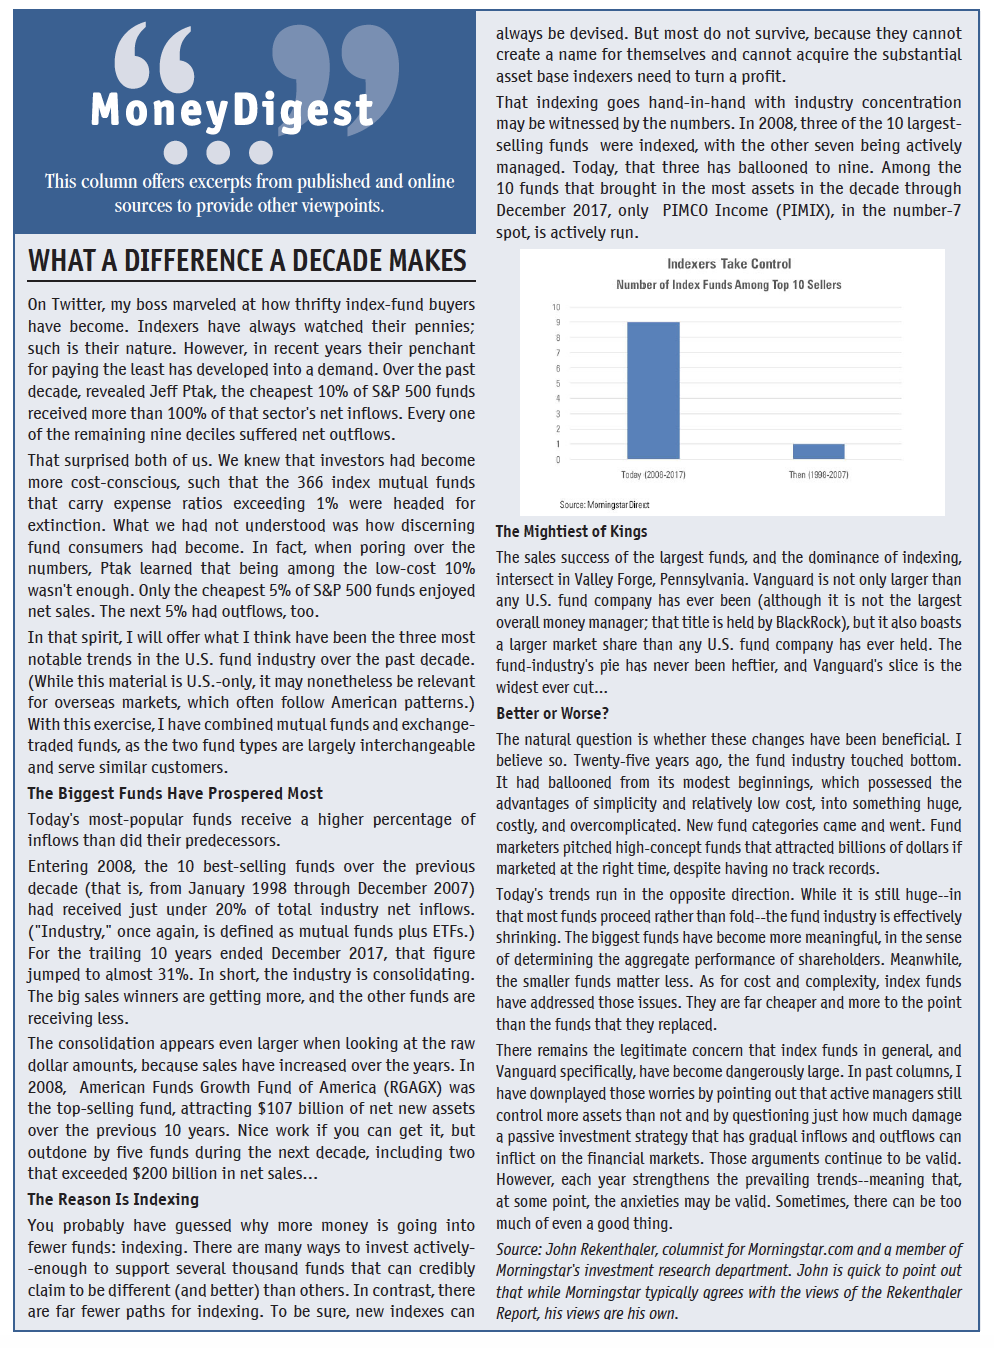 MoneyDigest July/August 2018